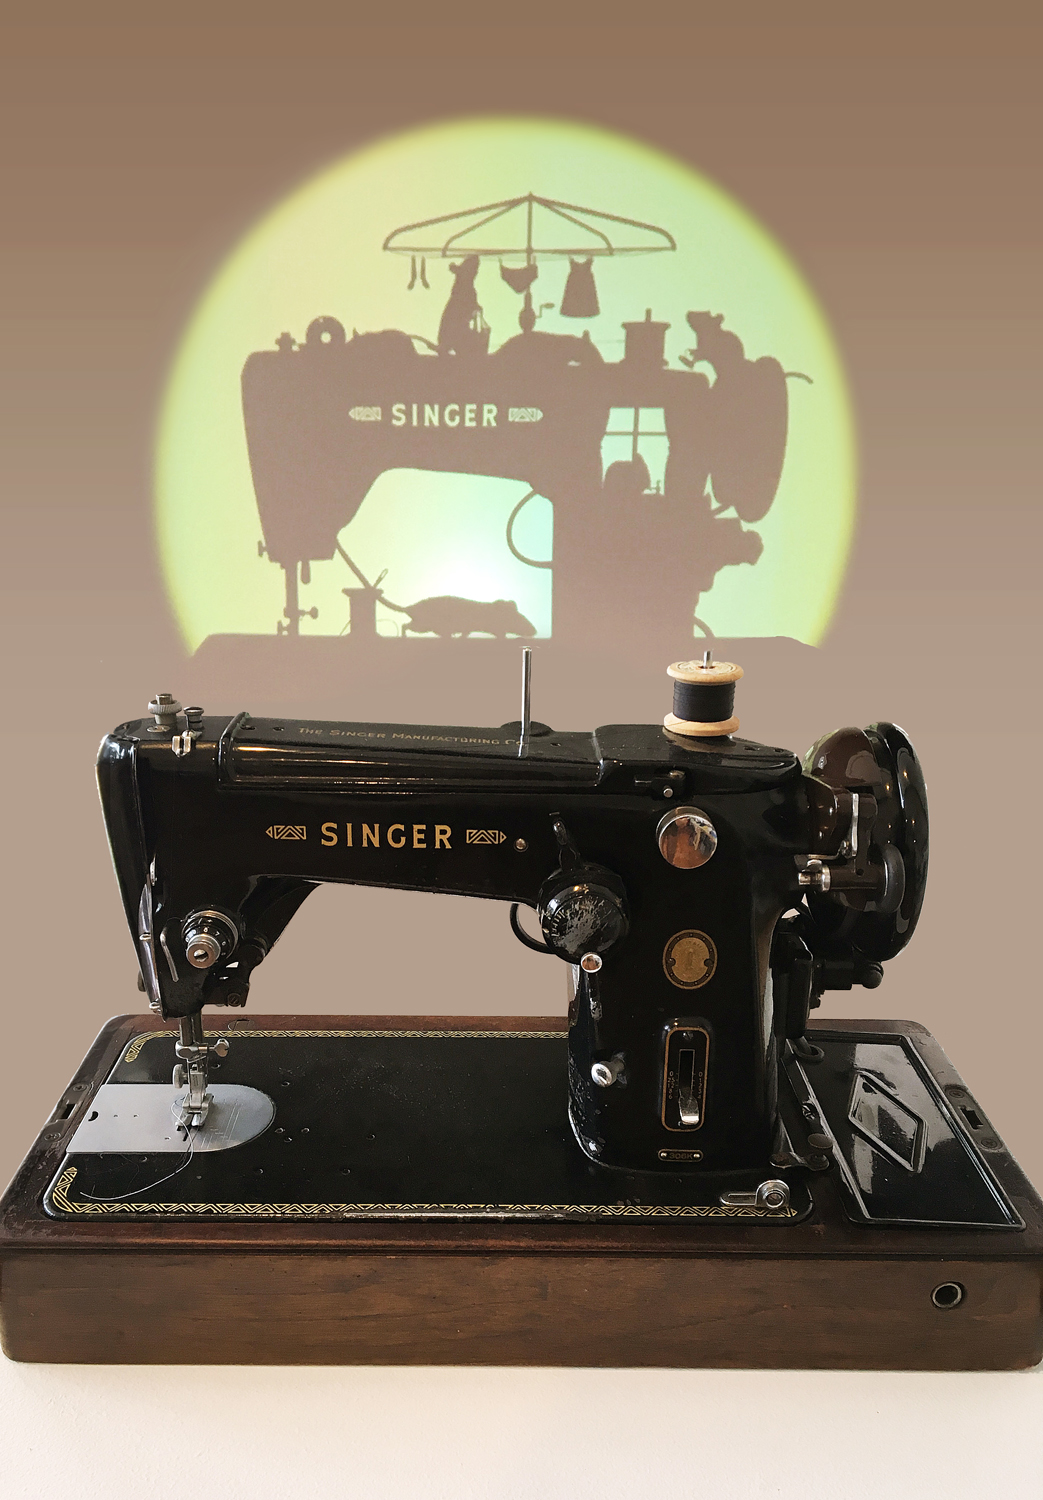 25. 'Of Mice and Hems', Tee Ken Ng, 1955 Singer Sewing machine, digital projector, looped animation, $3,000